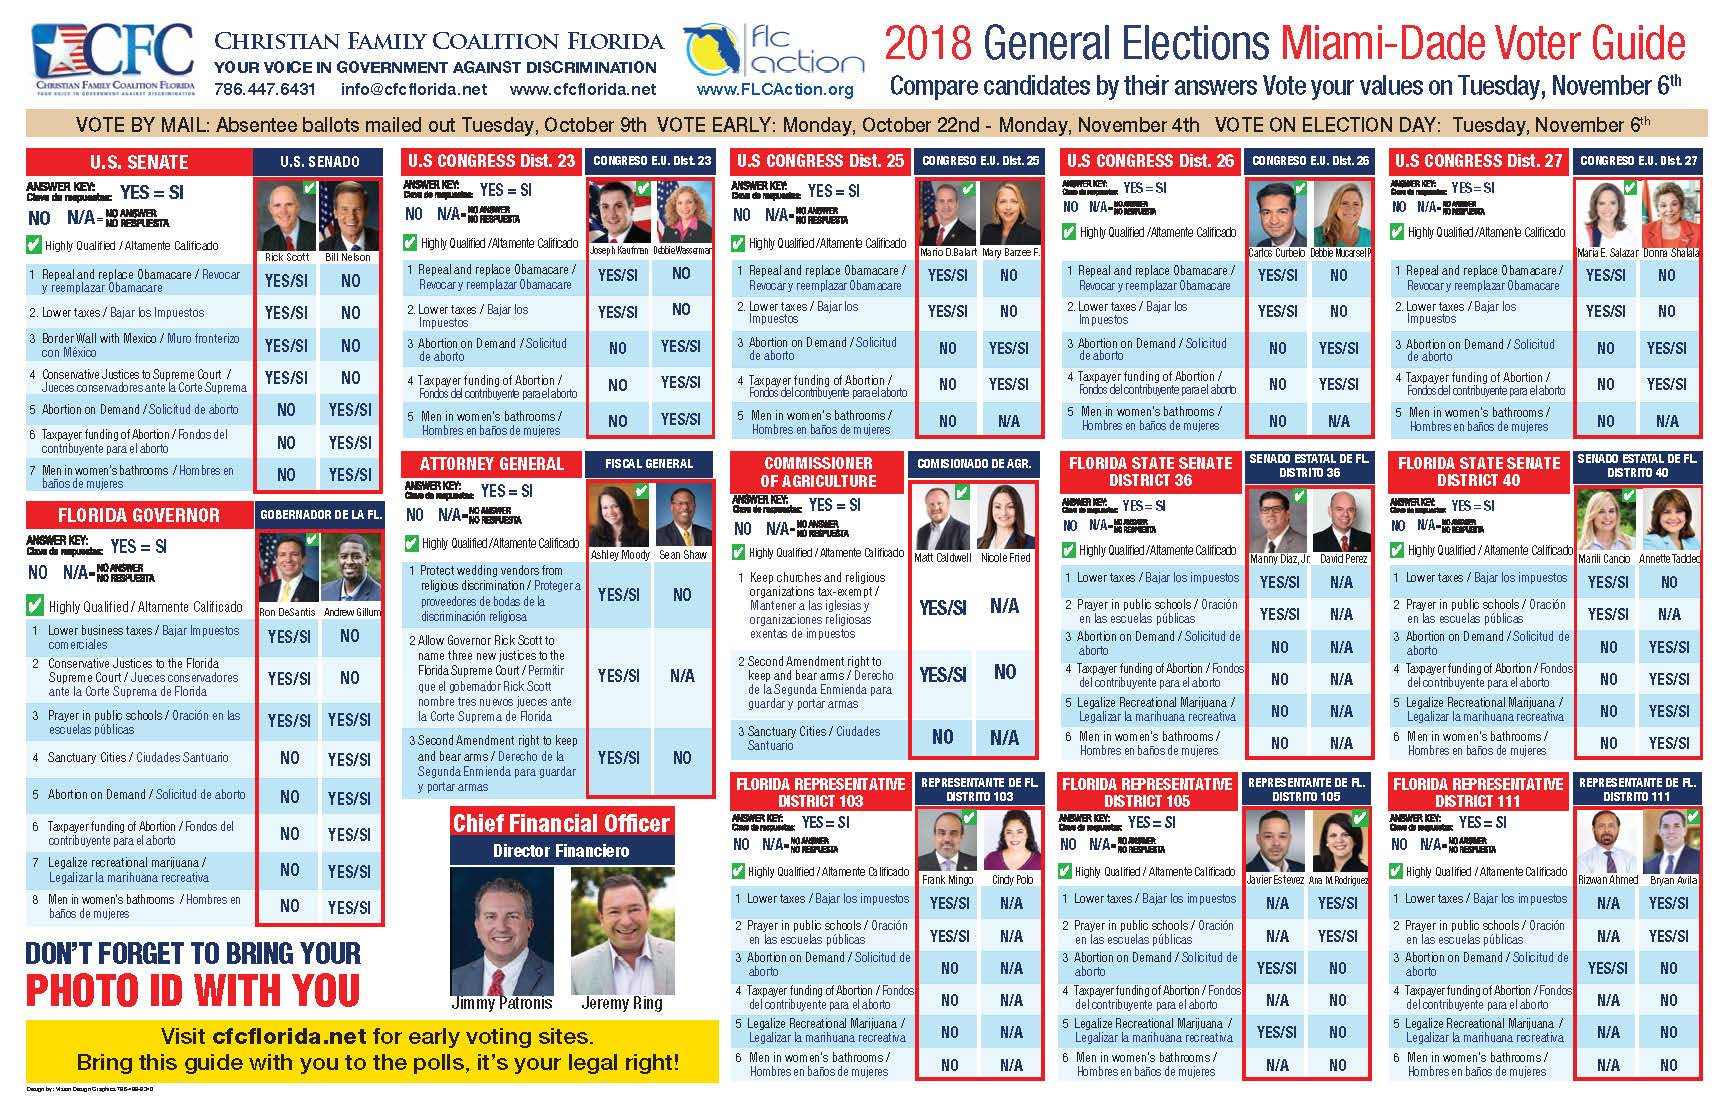 2018-miami-dade-voter-guide_Page_1